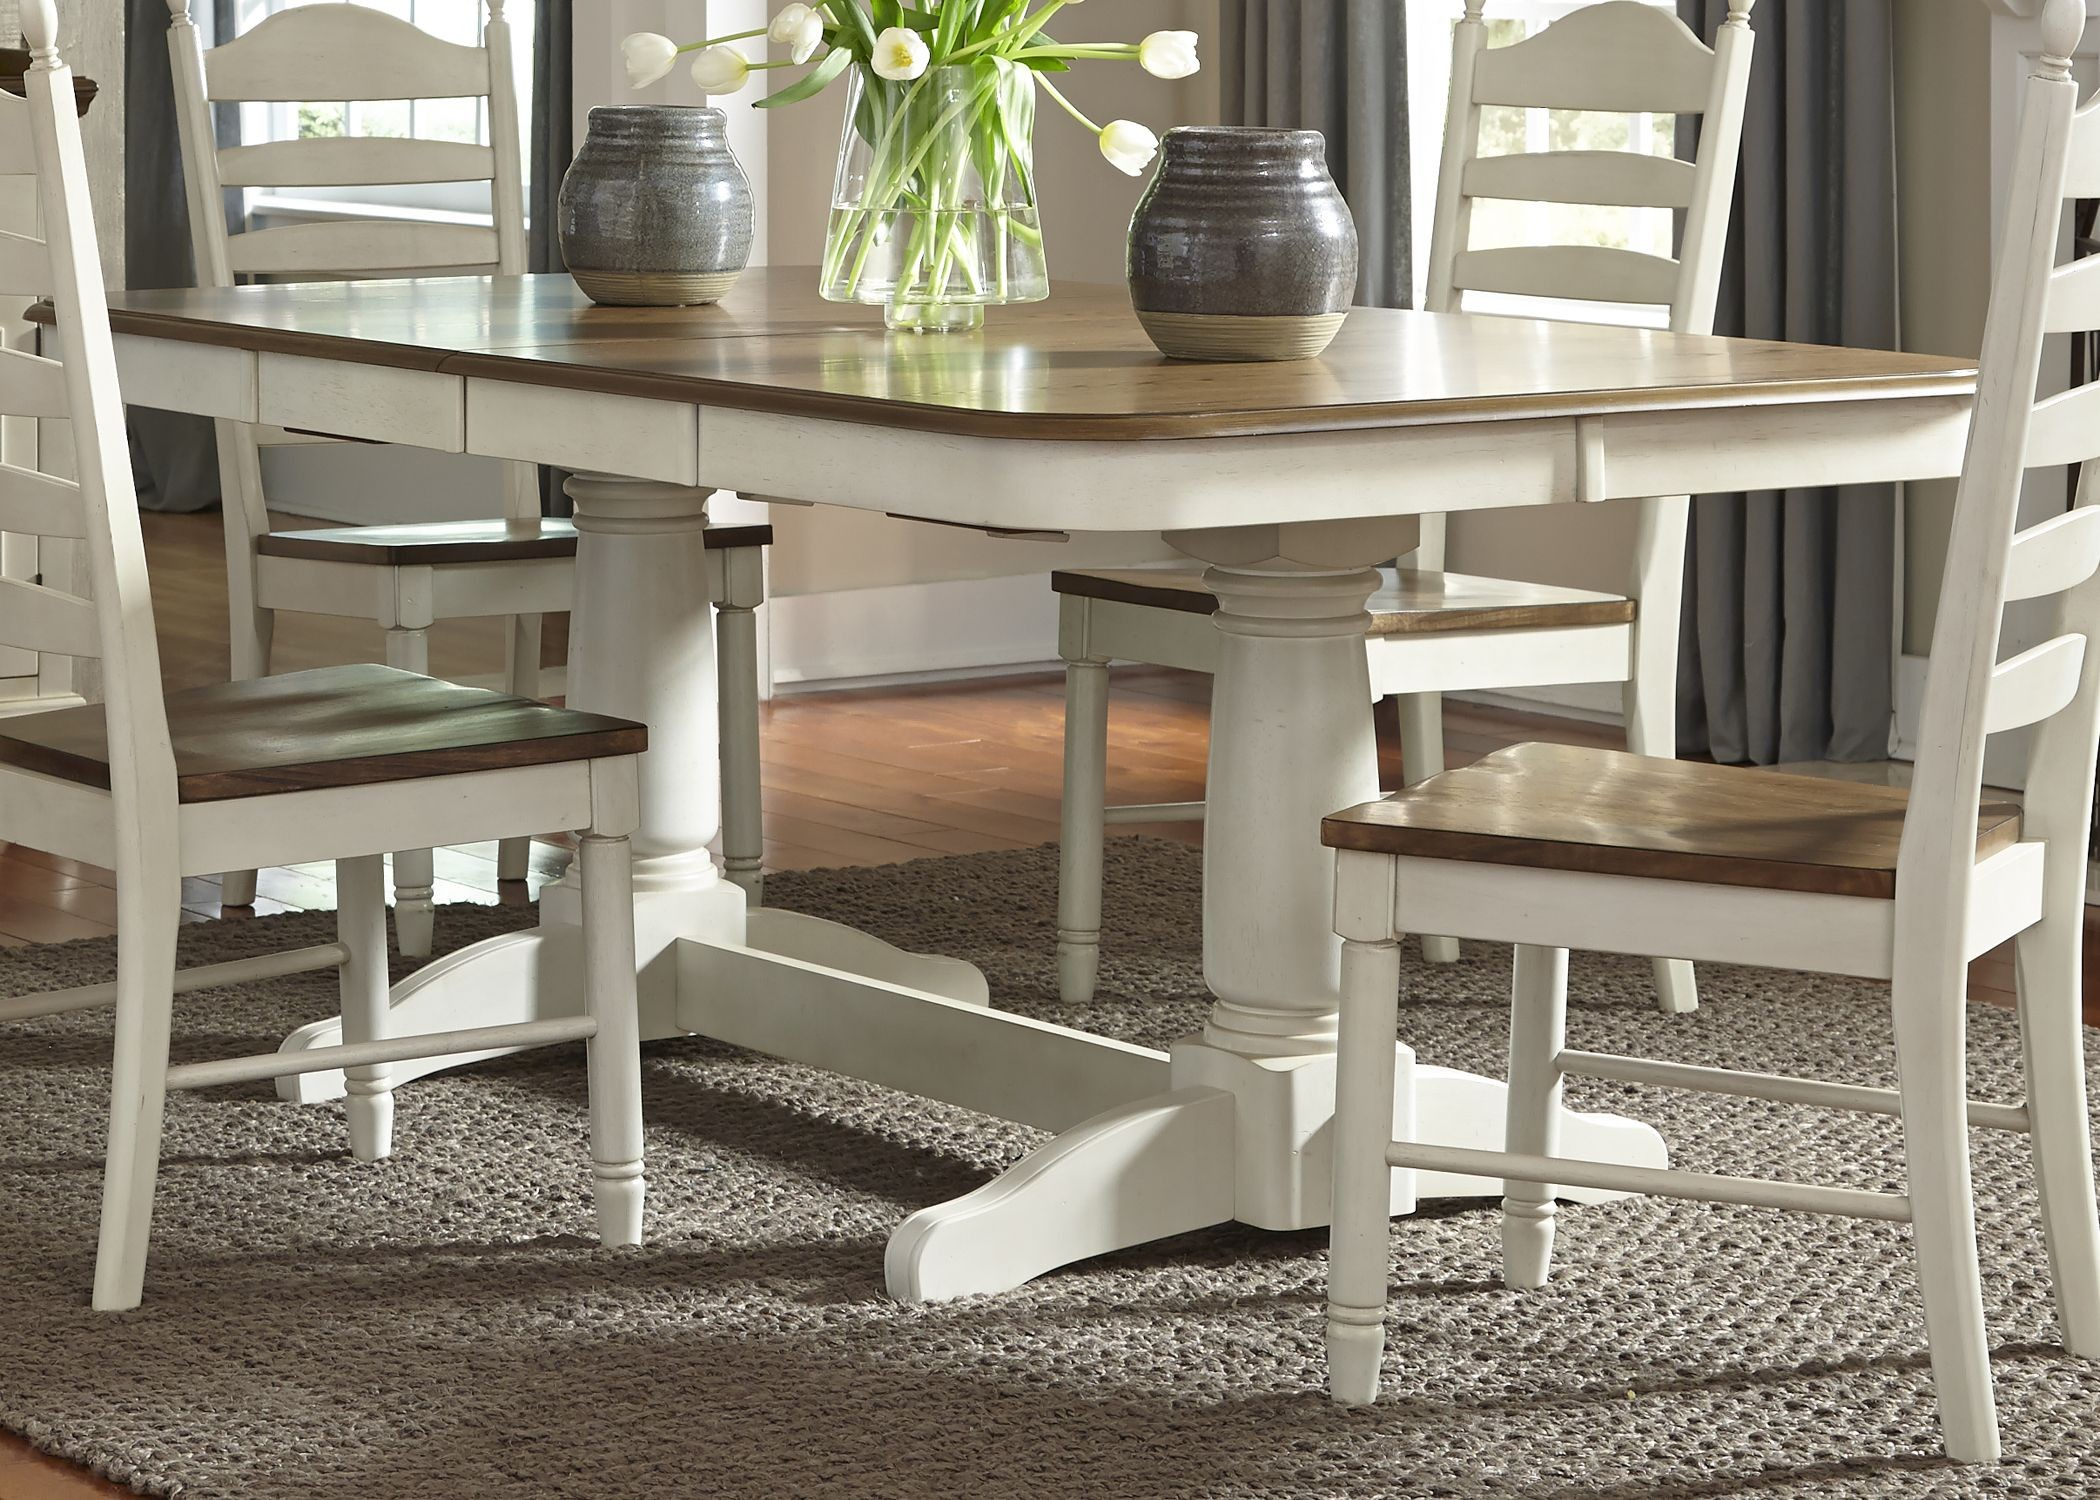 springfield honey and cream rectangular extendable double pedestal dining table from liberty. Black Bedroom Furniture Sets. Home Design Ideas